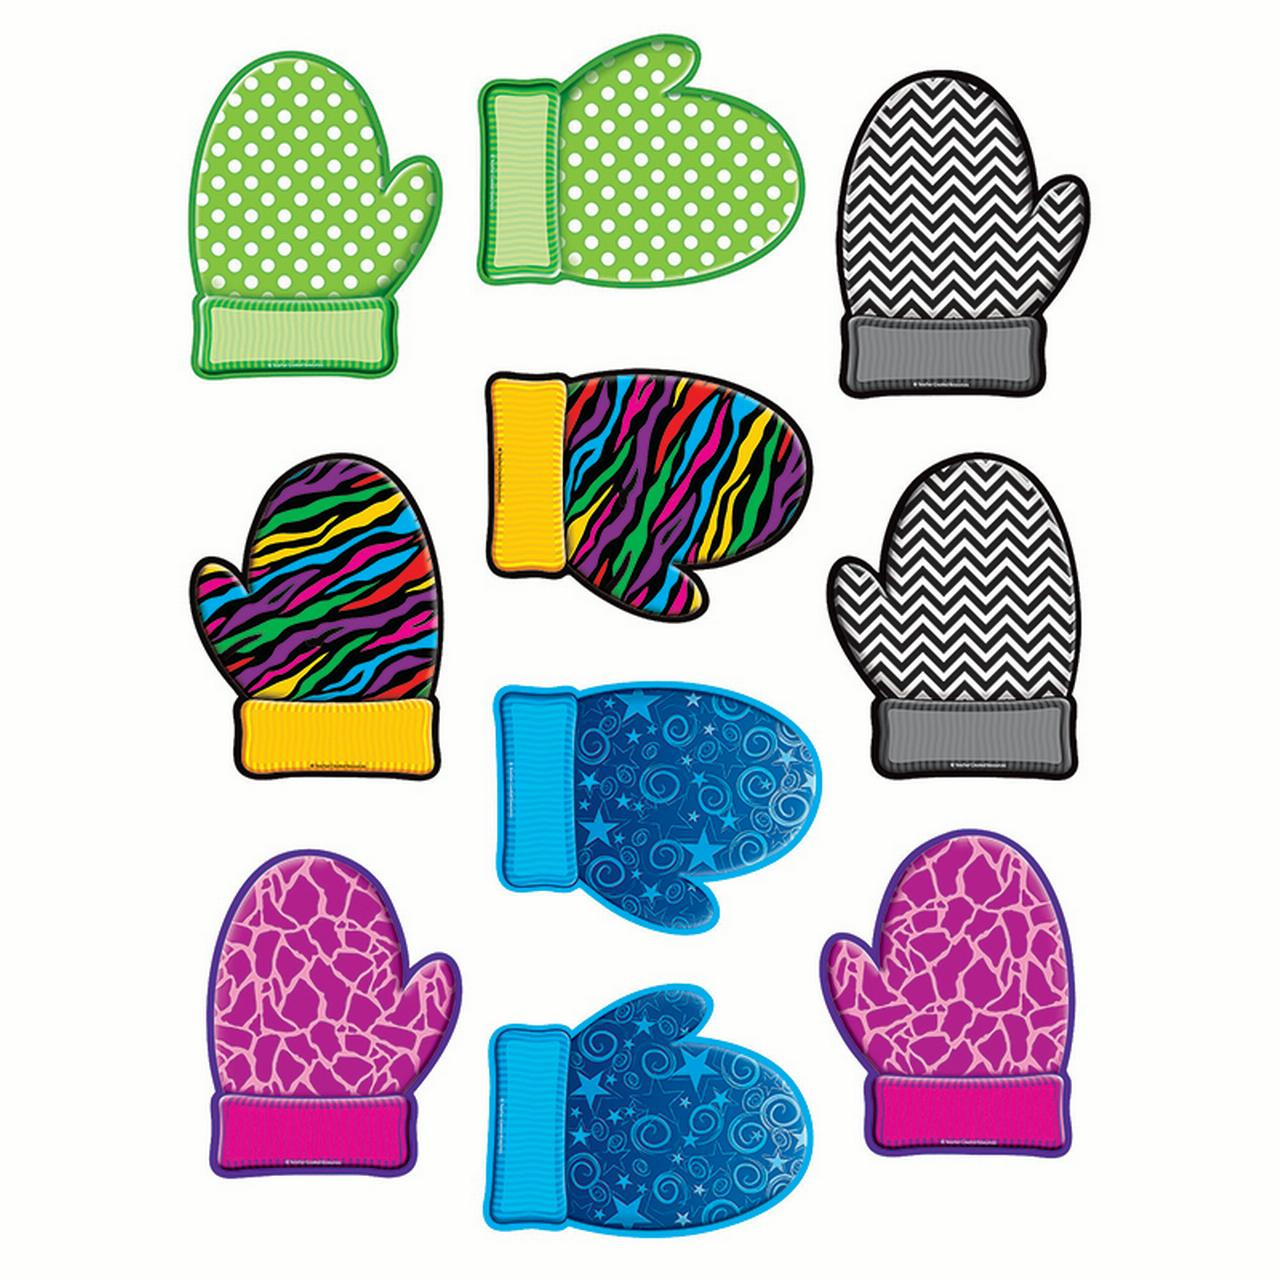 MITTENS ACCENTS 30CT 10 DESIGNS